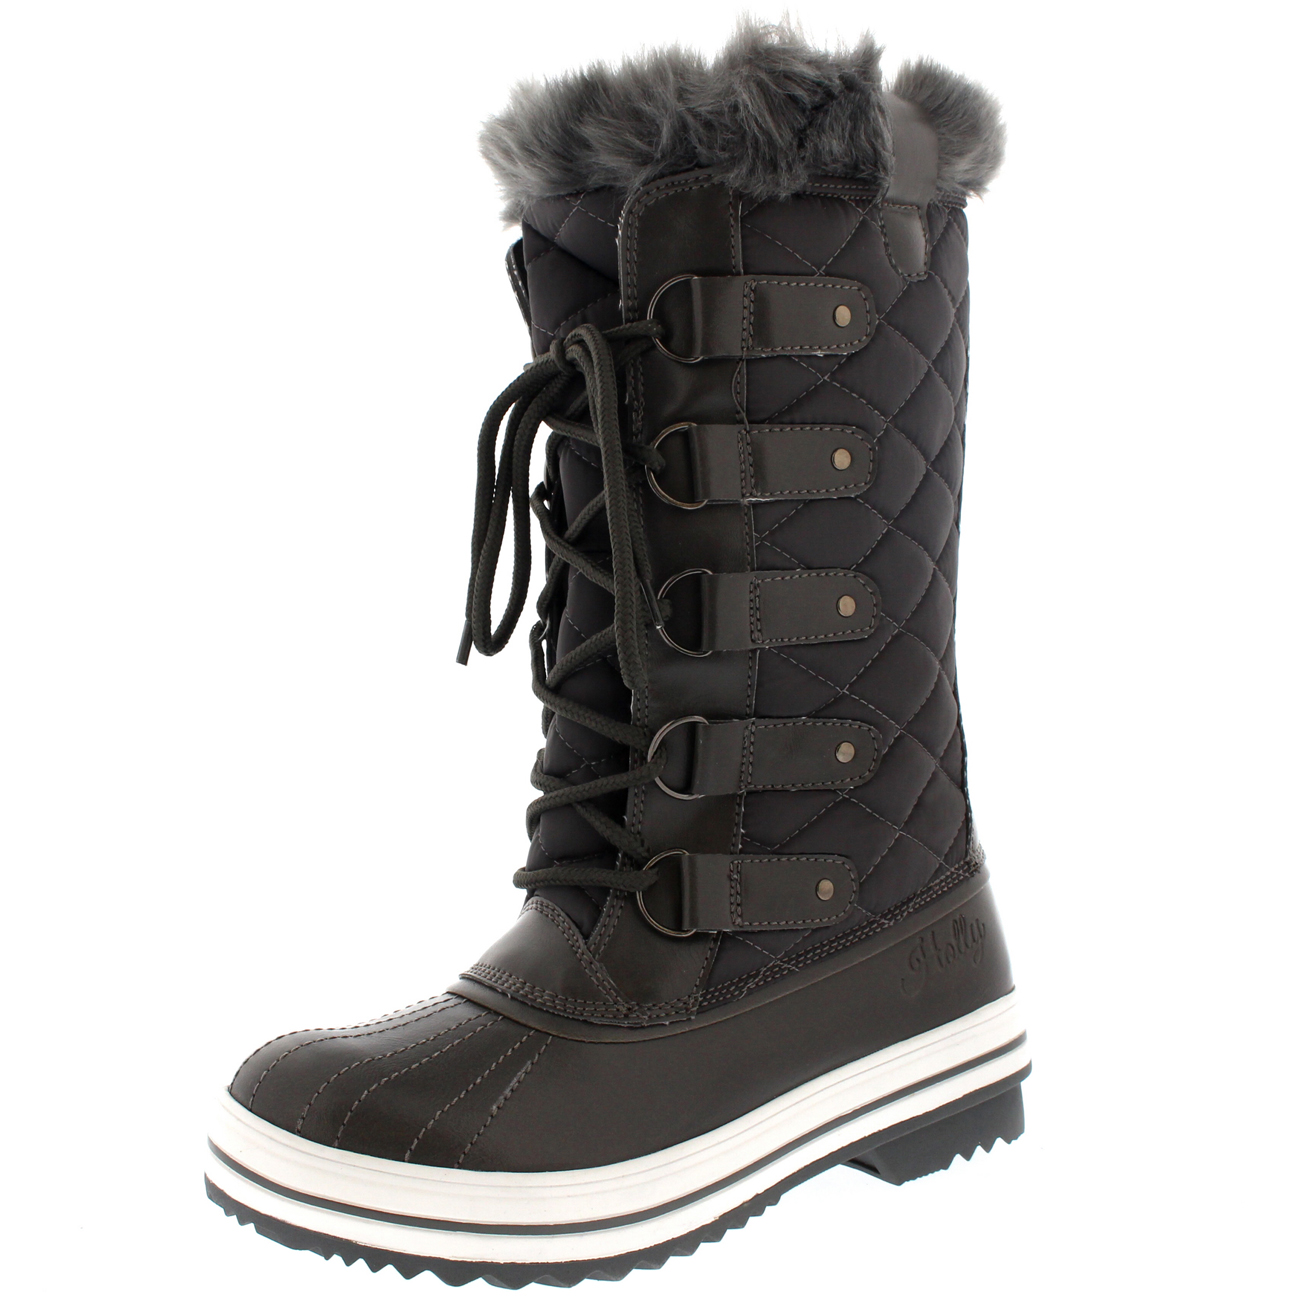 Womens Snow Boot Nylon Tall Winter Fur Lined Snow Warm Quilted ...